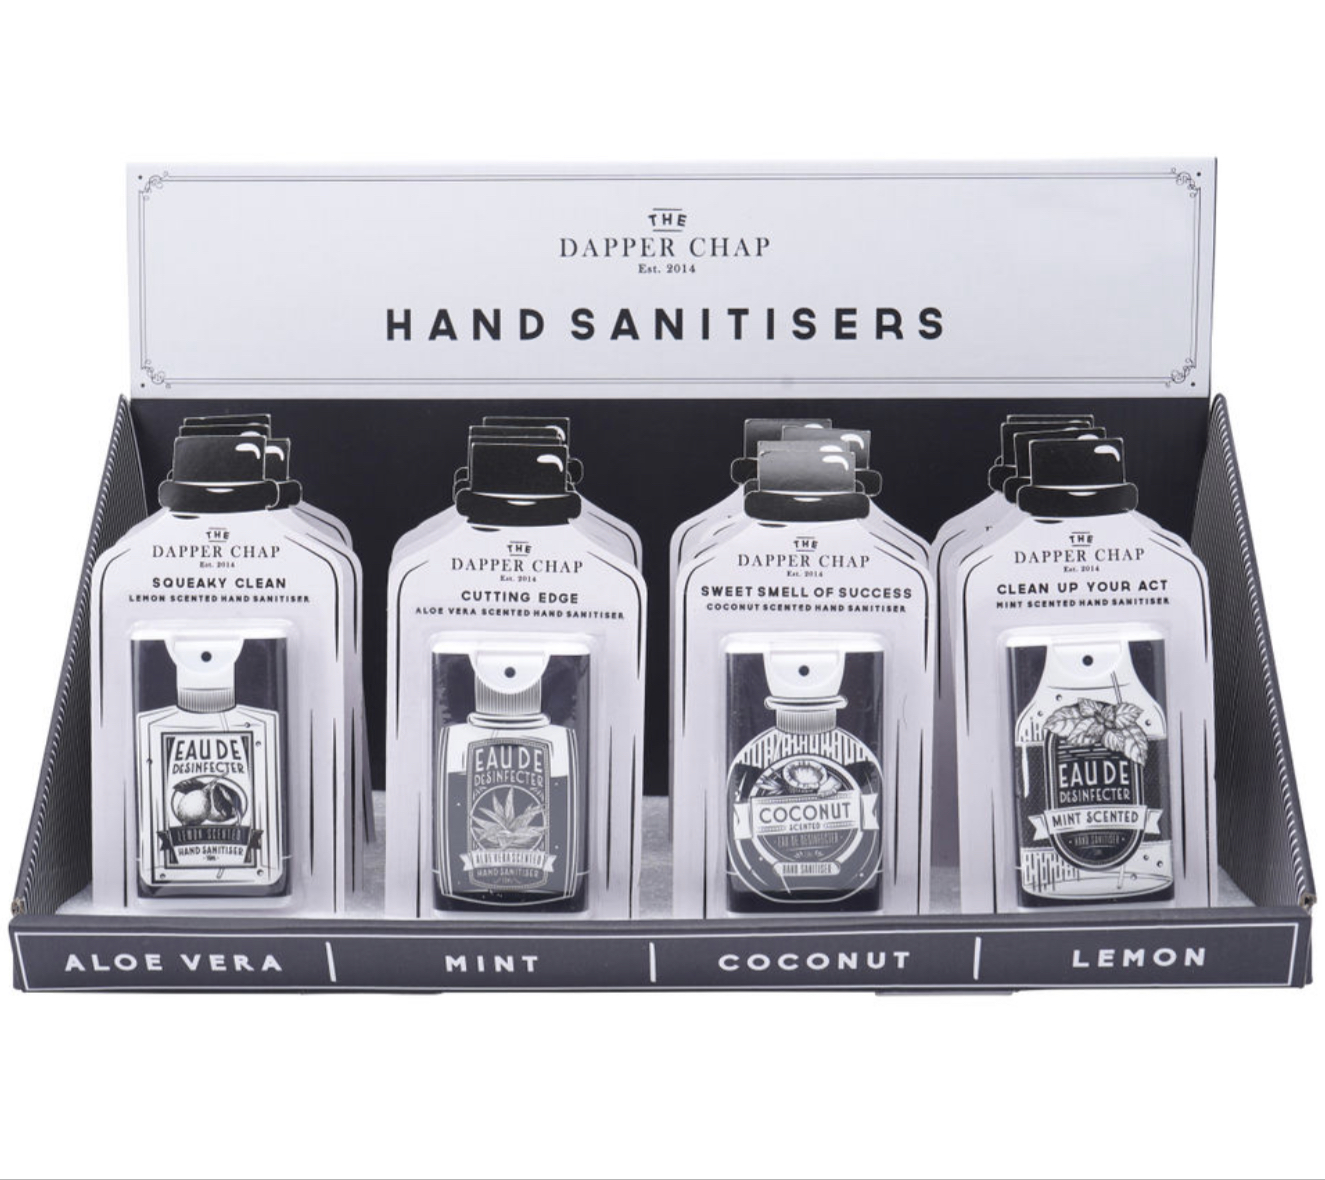 Dapper Chap 4 Assorted Hand Sanitisers. Pocket hand sanitiser